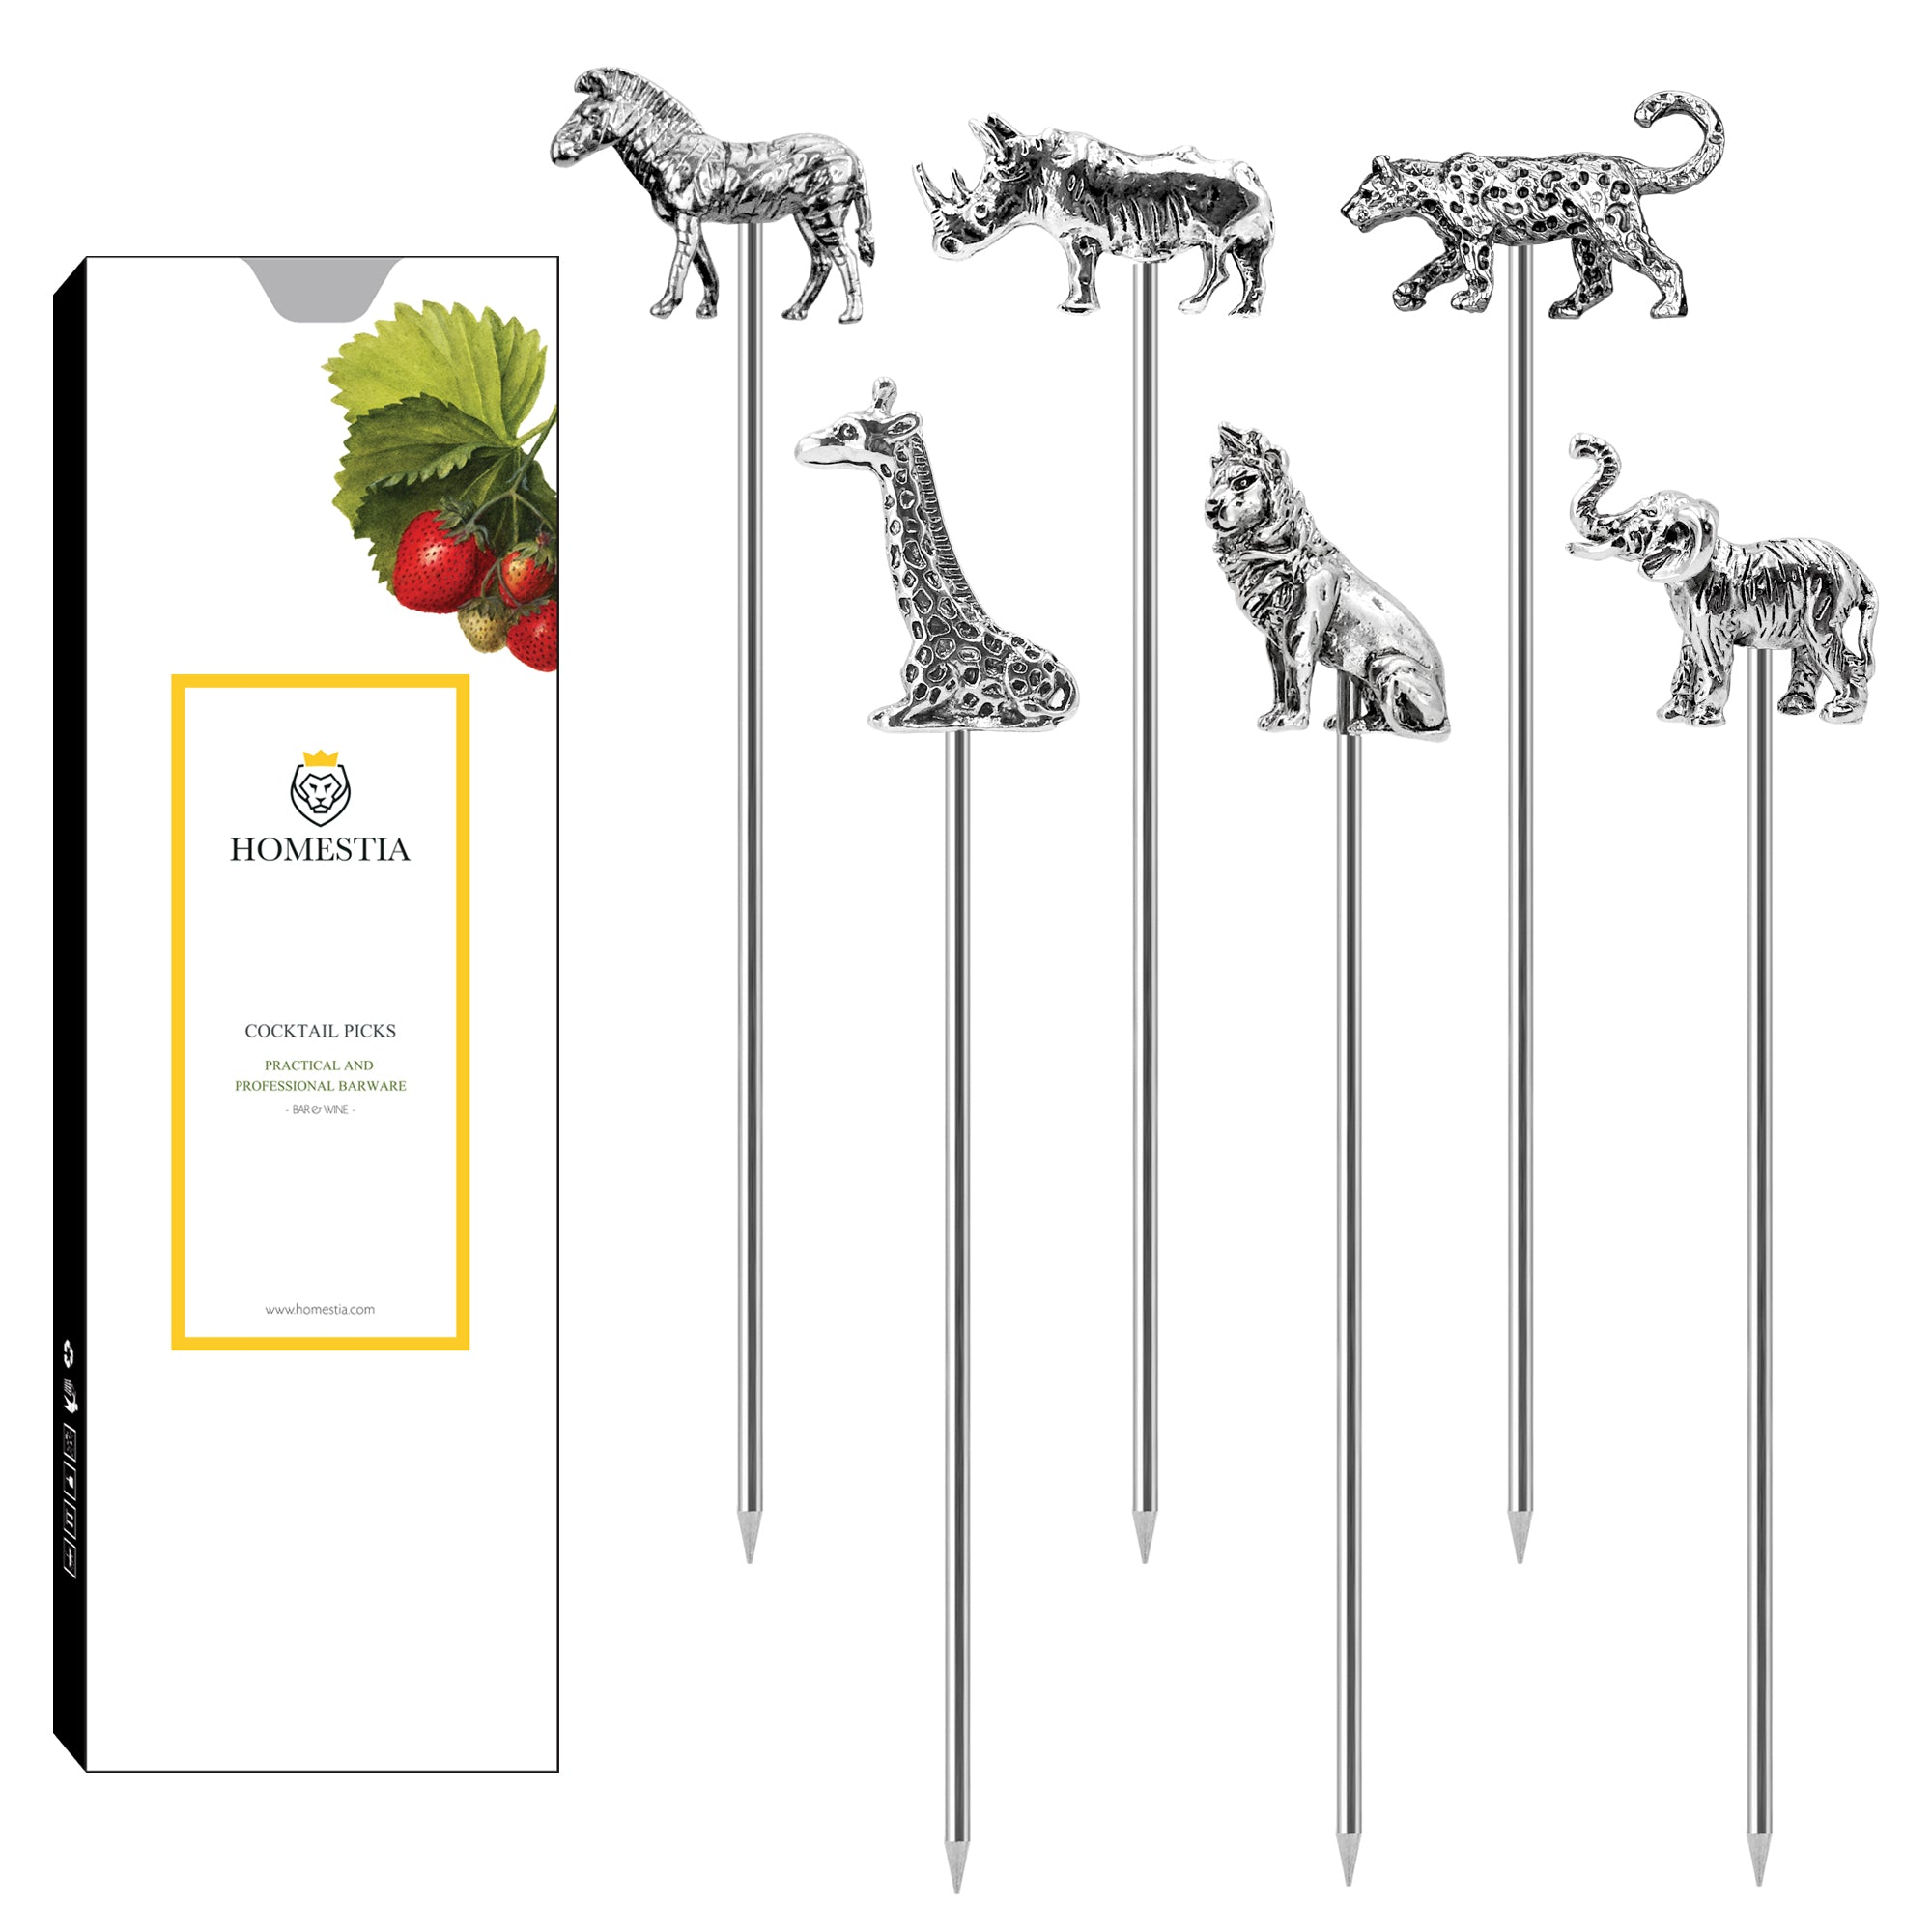 Animal Series Cocktail Picks Reusable Stainless Steel Cocktail Skewer Olive Picks Pack of 5 Homestia®